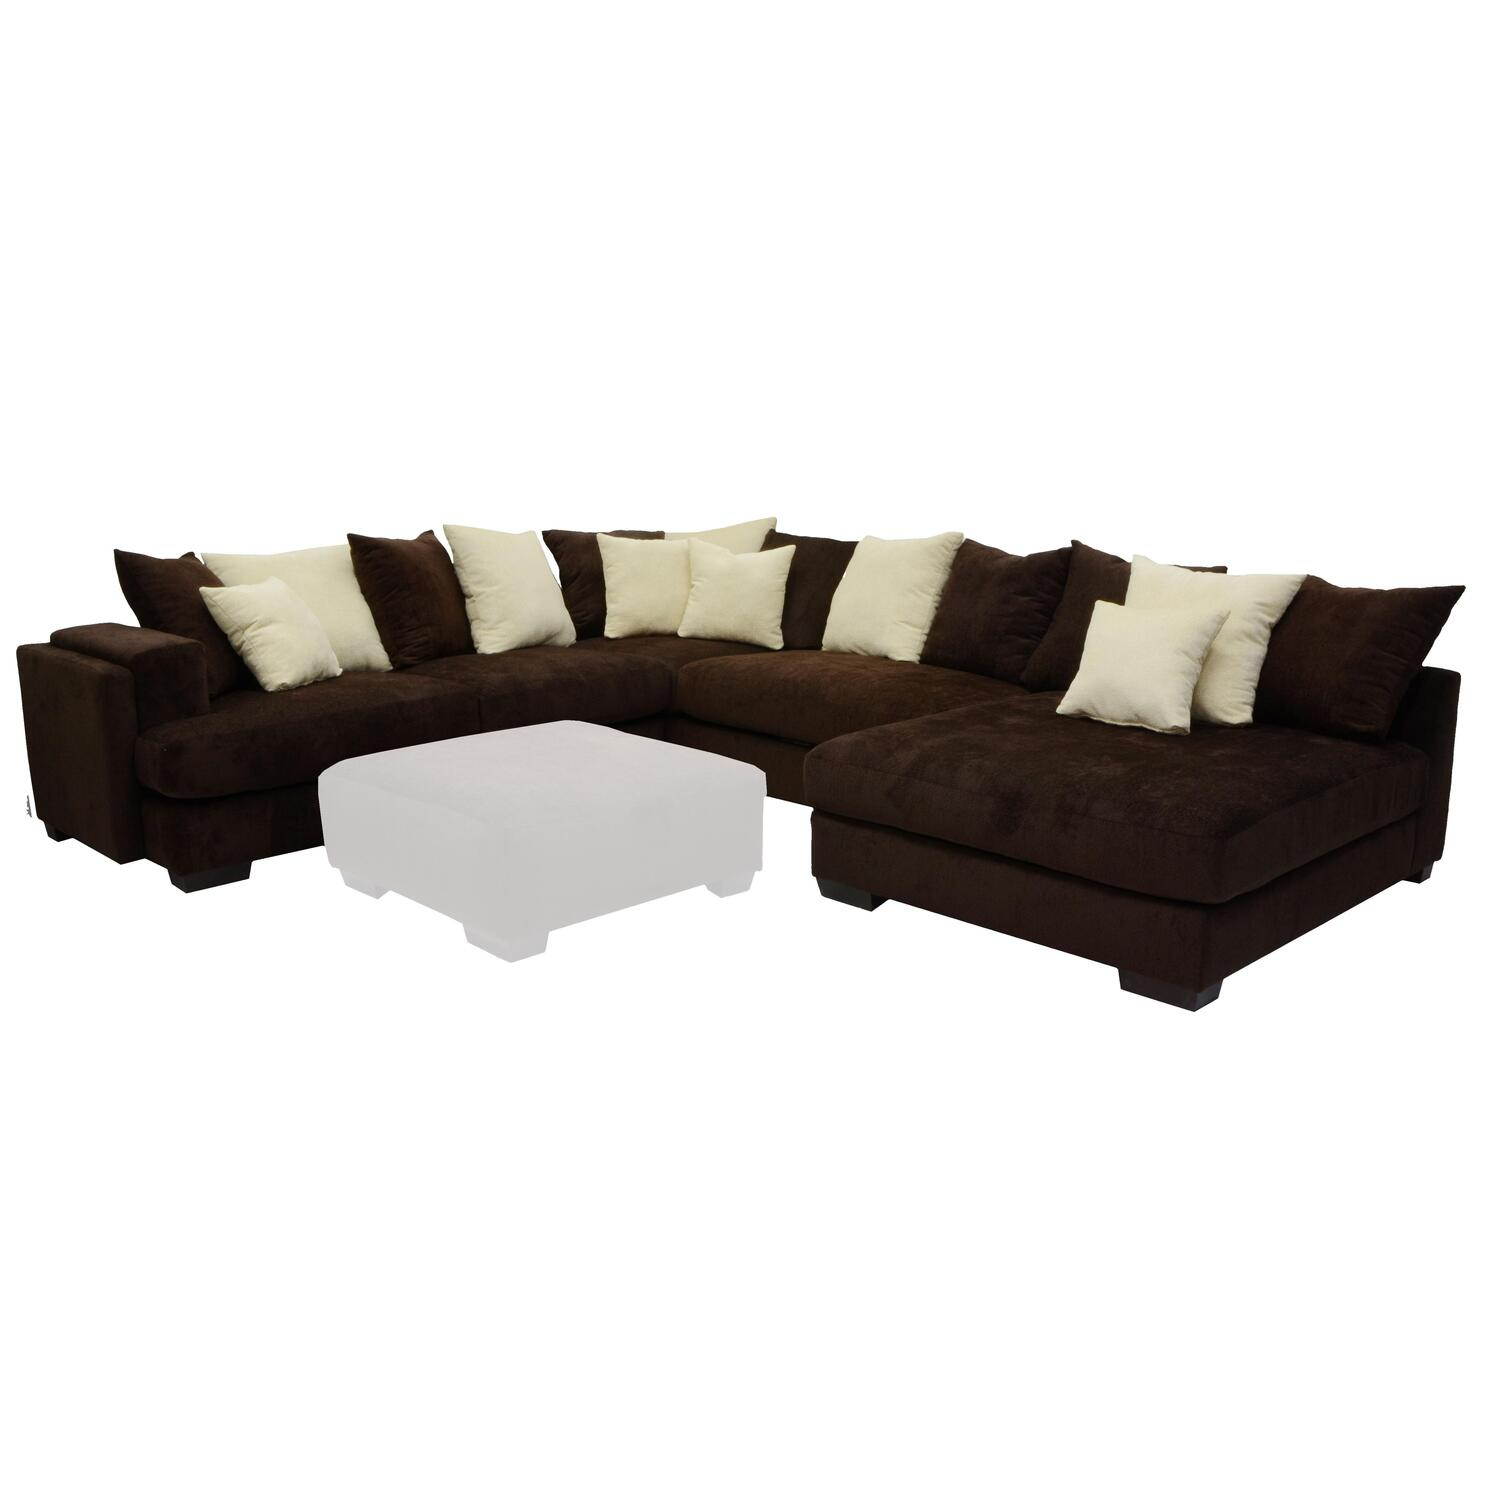 Jackson Furniture Axis Large Sectional By Oj Commerce 4429 62 36 38 2571 09 2